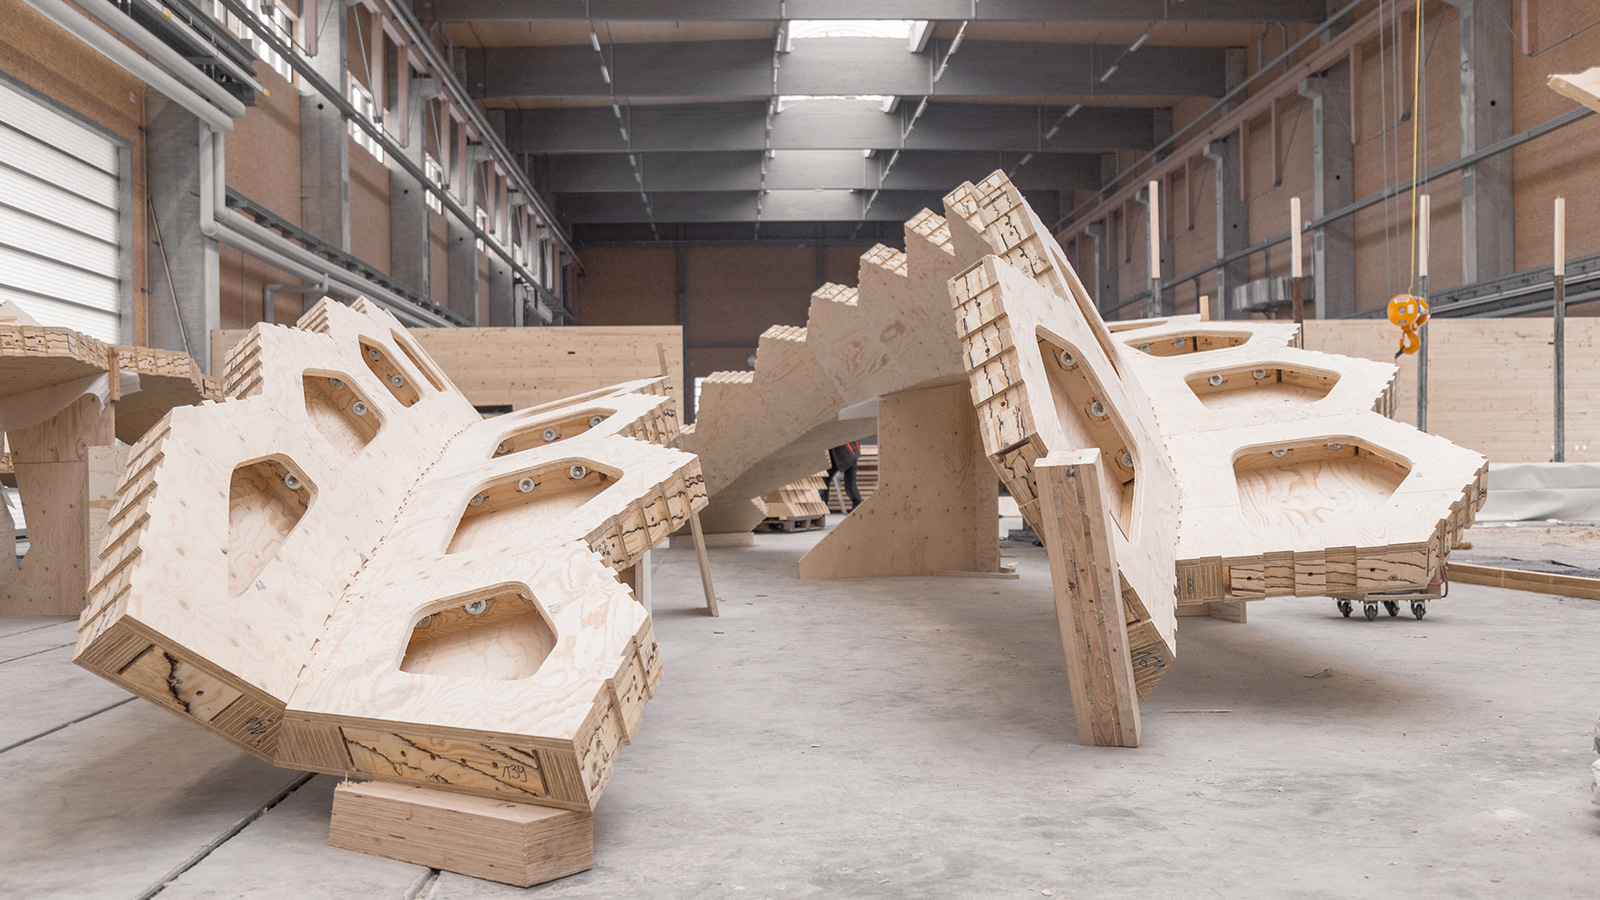 Assembly of components | BUGA Wood Pavilion 2019 | University of Stuttgart | STIRworld